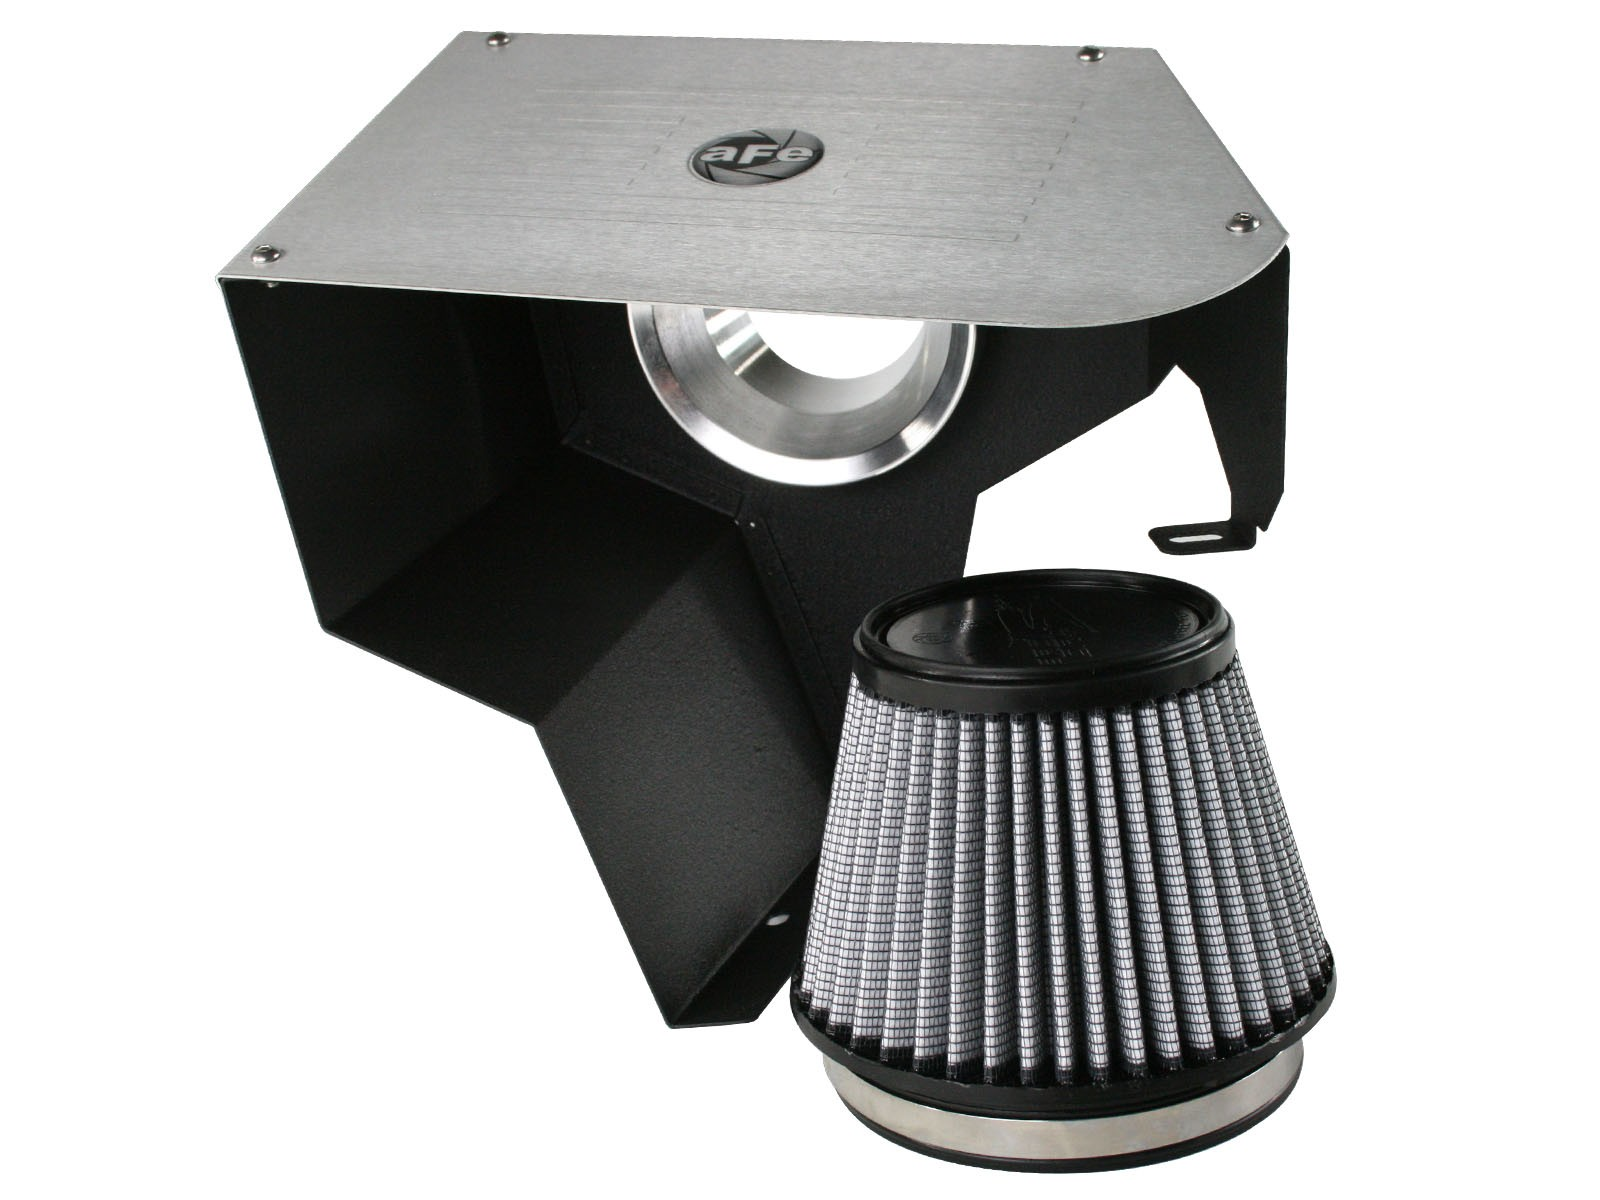 aFe POWER 51-10661 Magnum FORCE Stage-1 Pro DRY S Cold Air Intake System